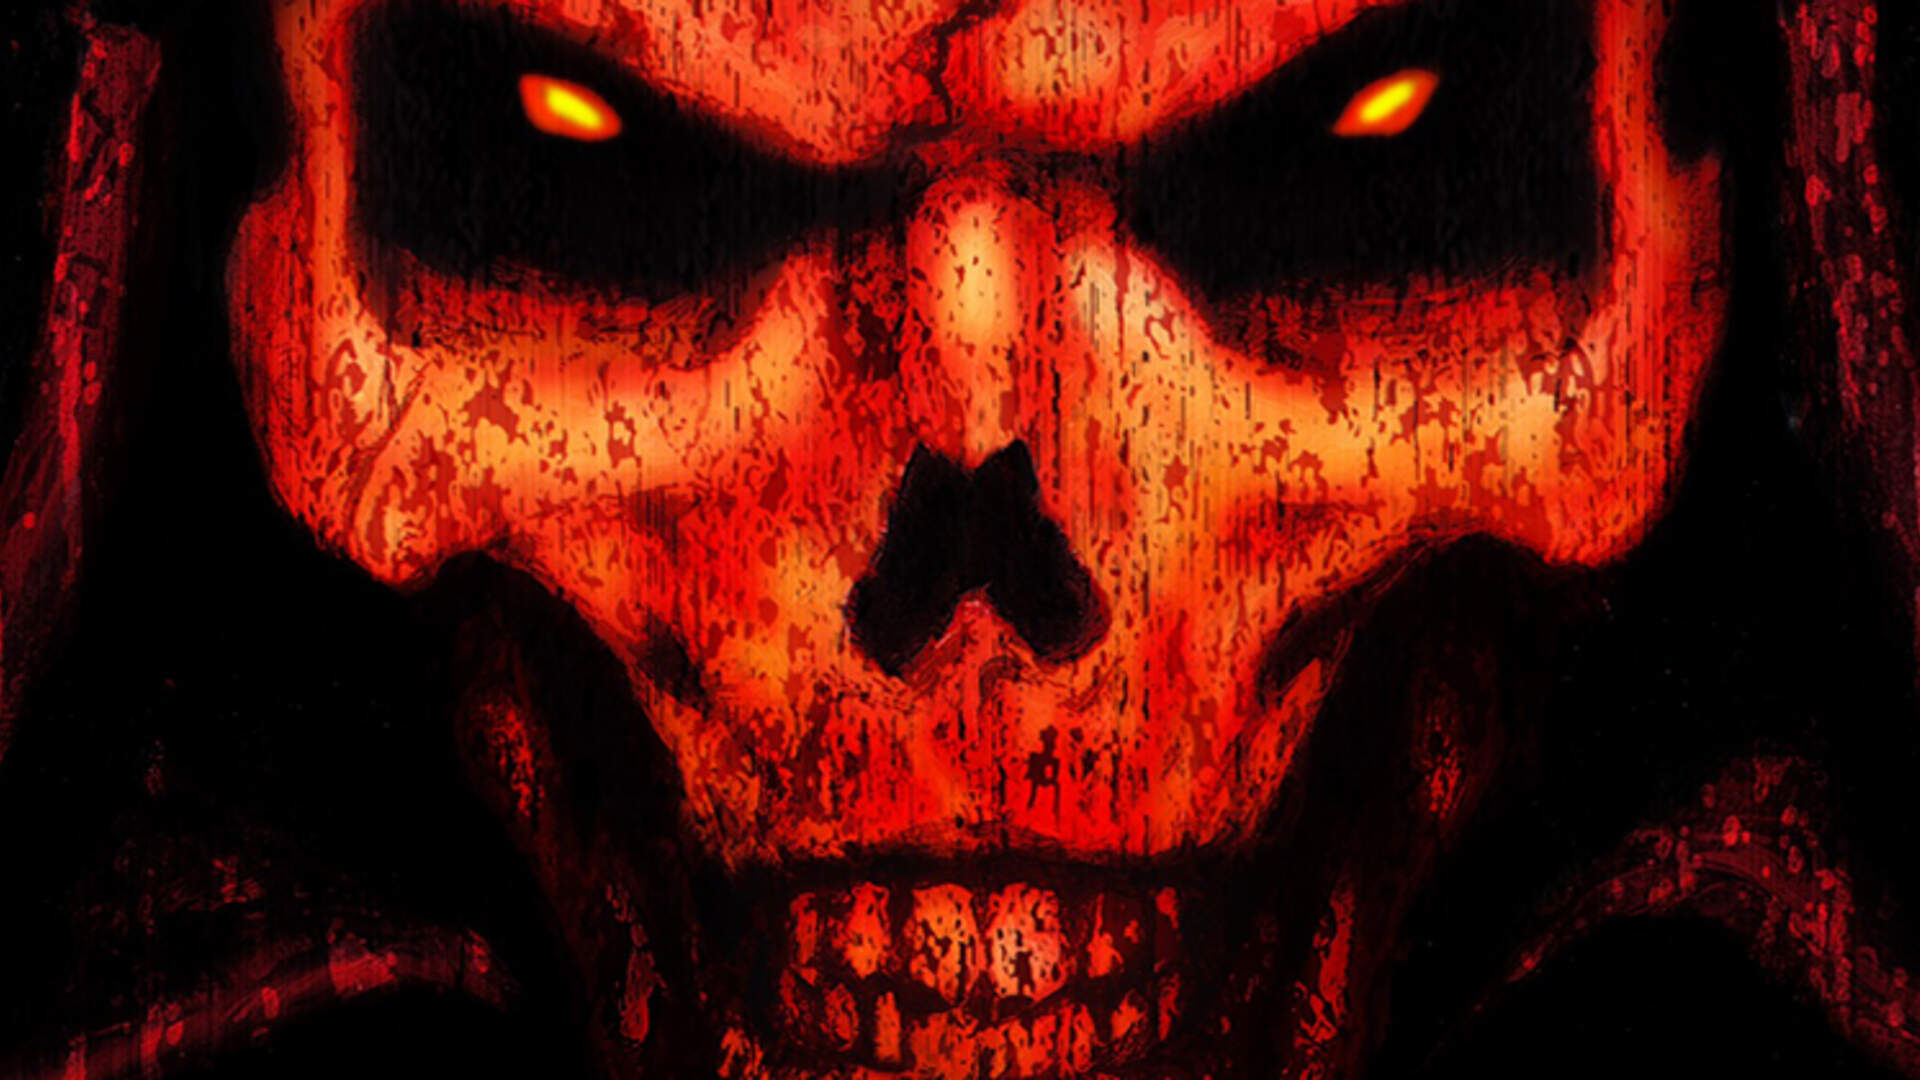 In Their Own Words: An Oral History of Diablo II With David Brevik, Max Schaefer, and Erich Schaefer